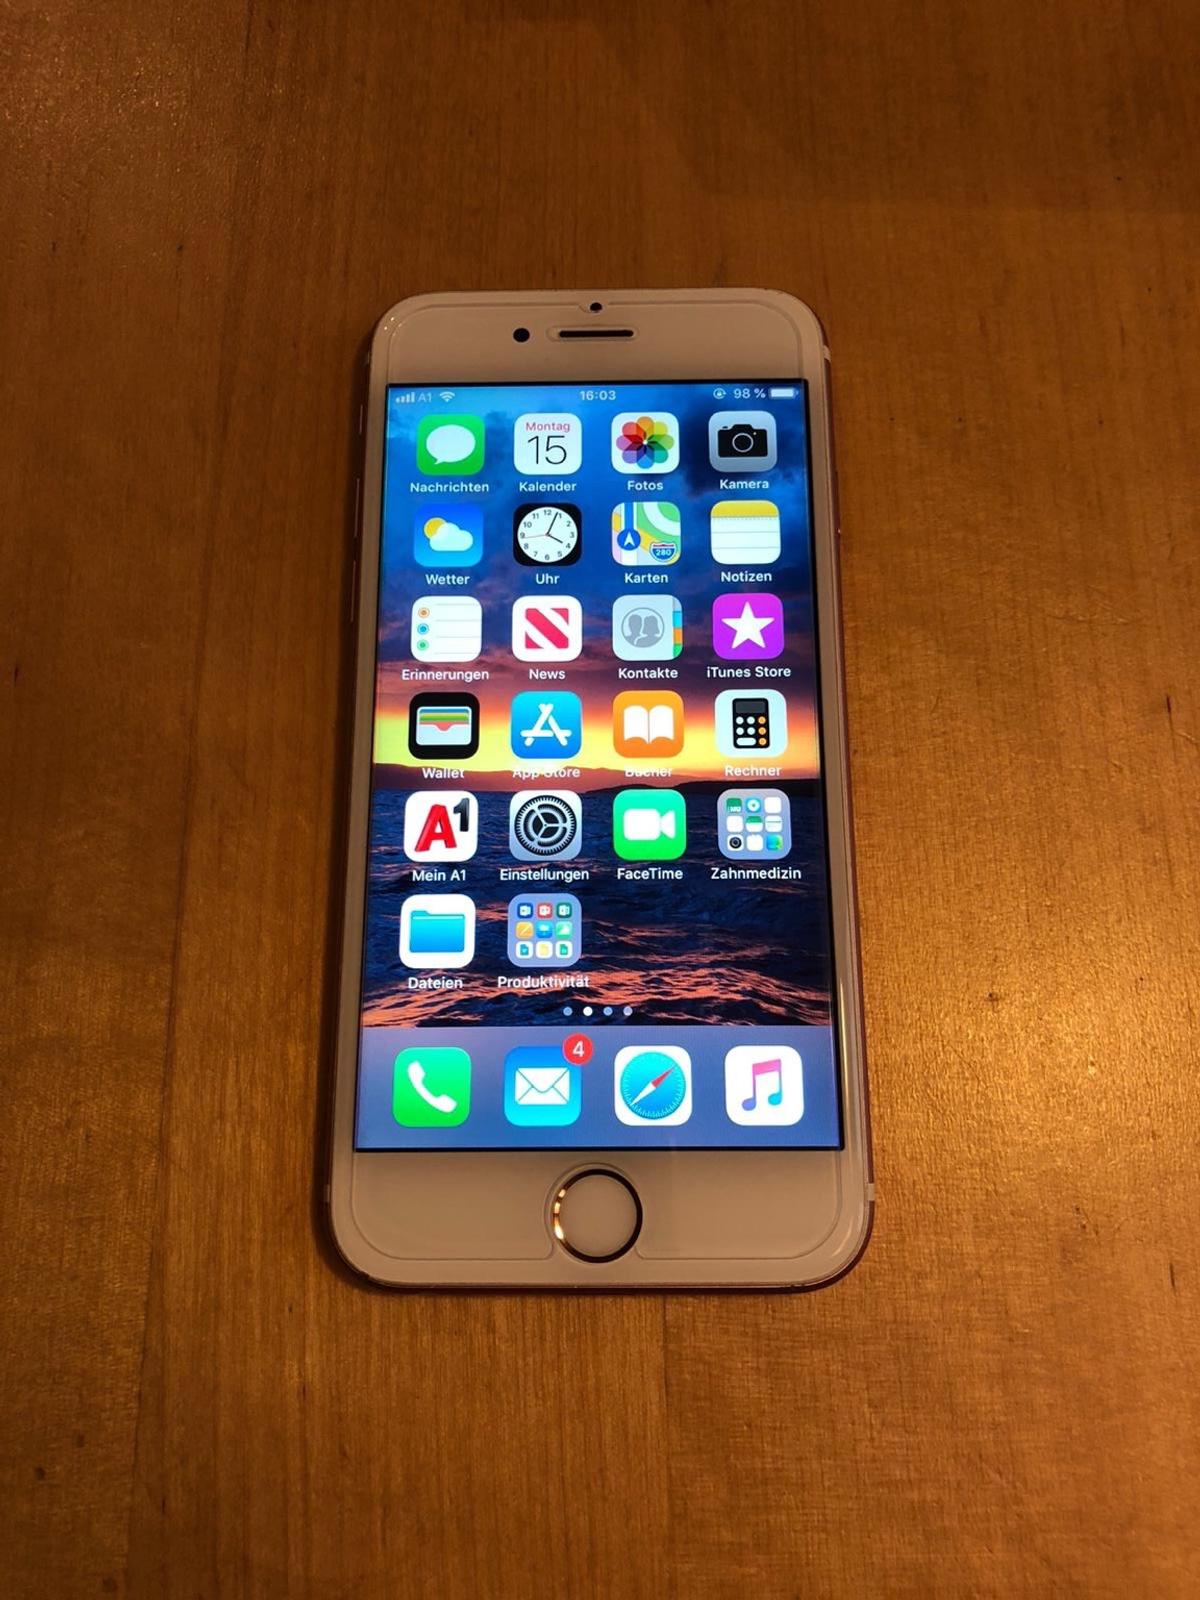 Iphone 6s 64 Gb A1 Simlock A1 Bob Educom In 6060 Hall In Tirol For 170 00 For Sale Shpock